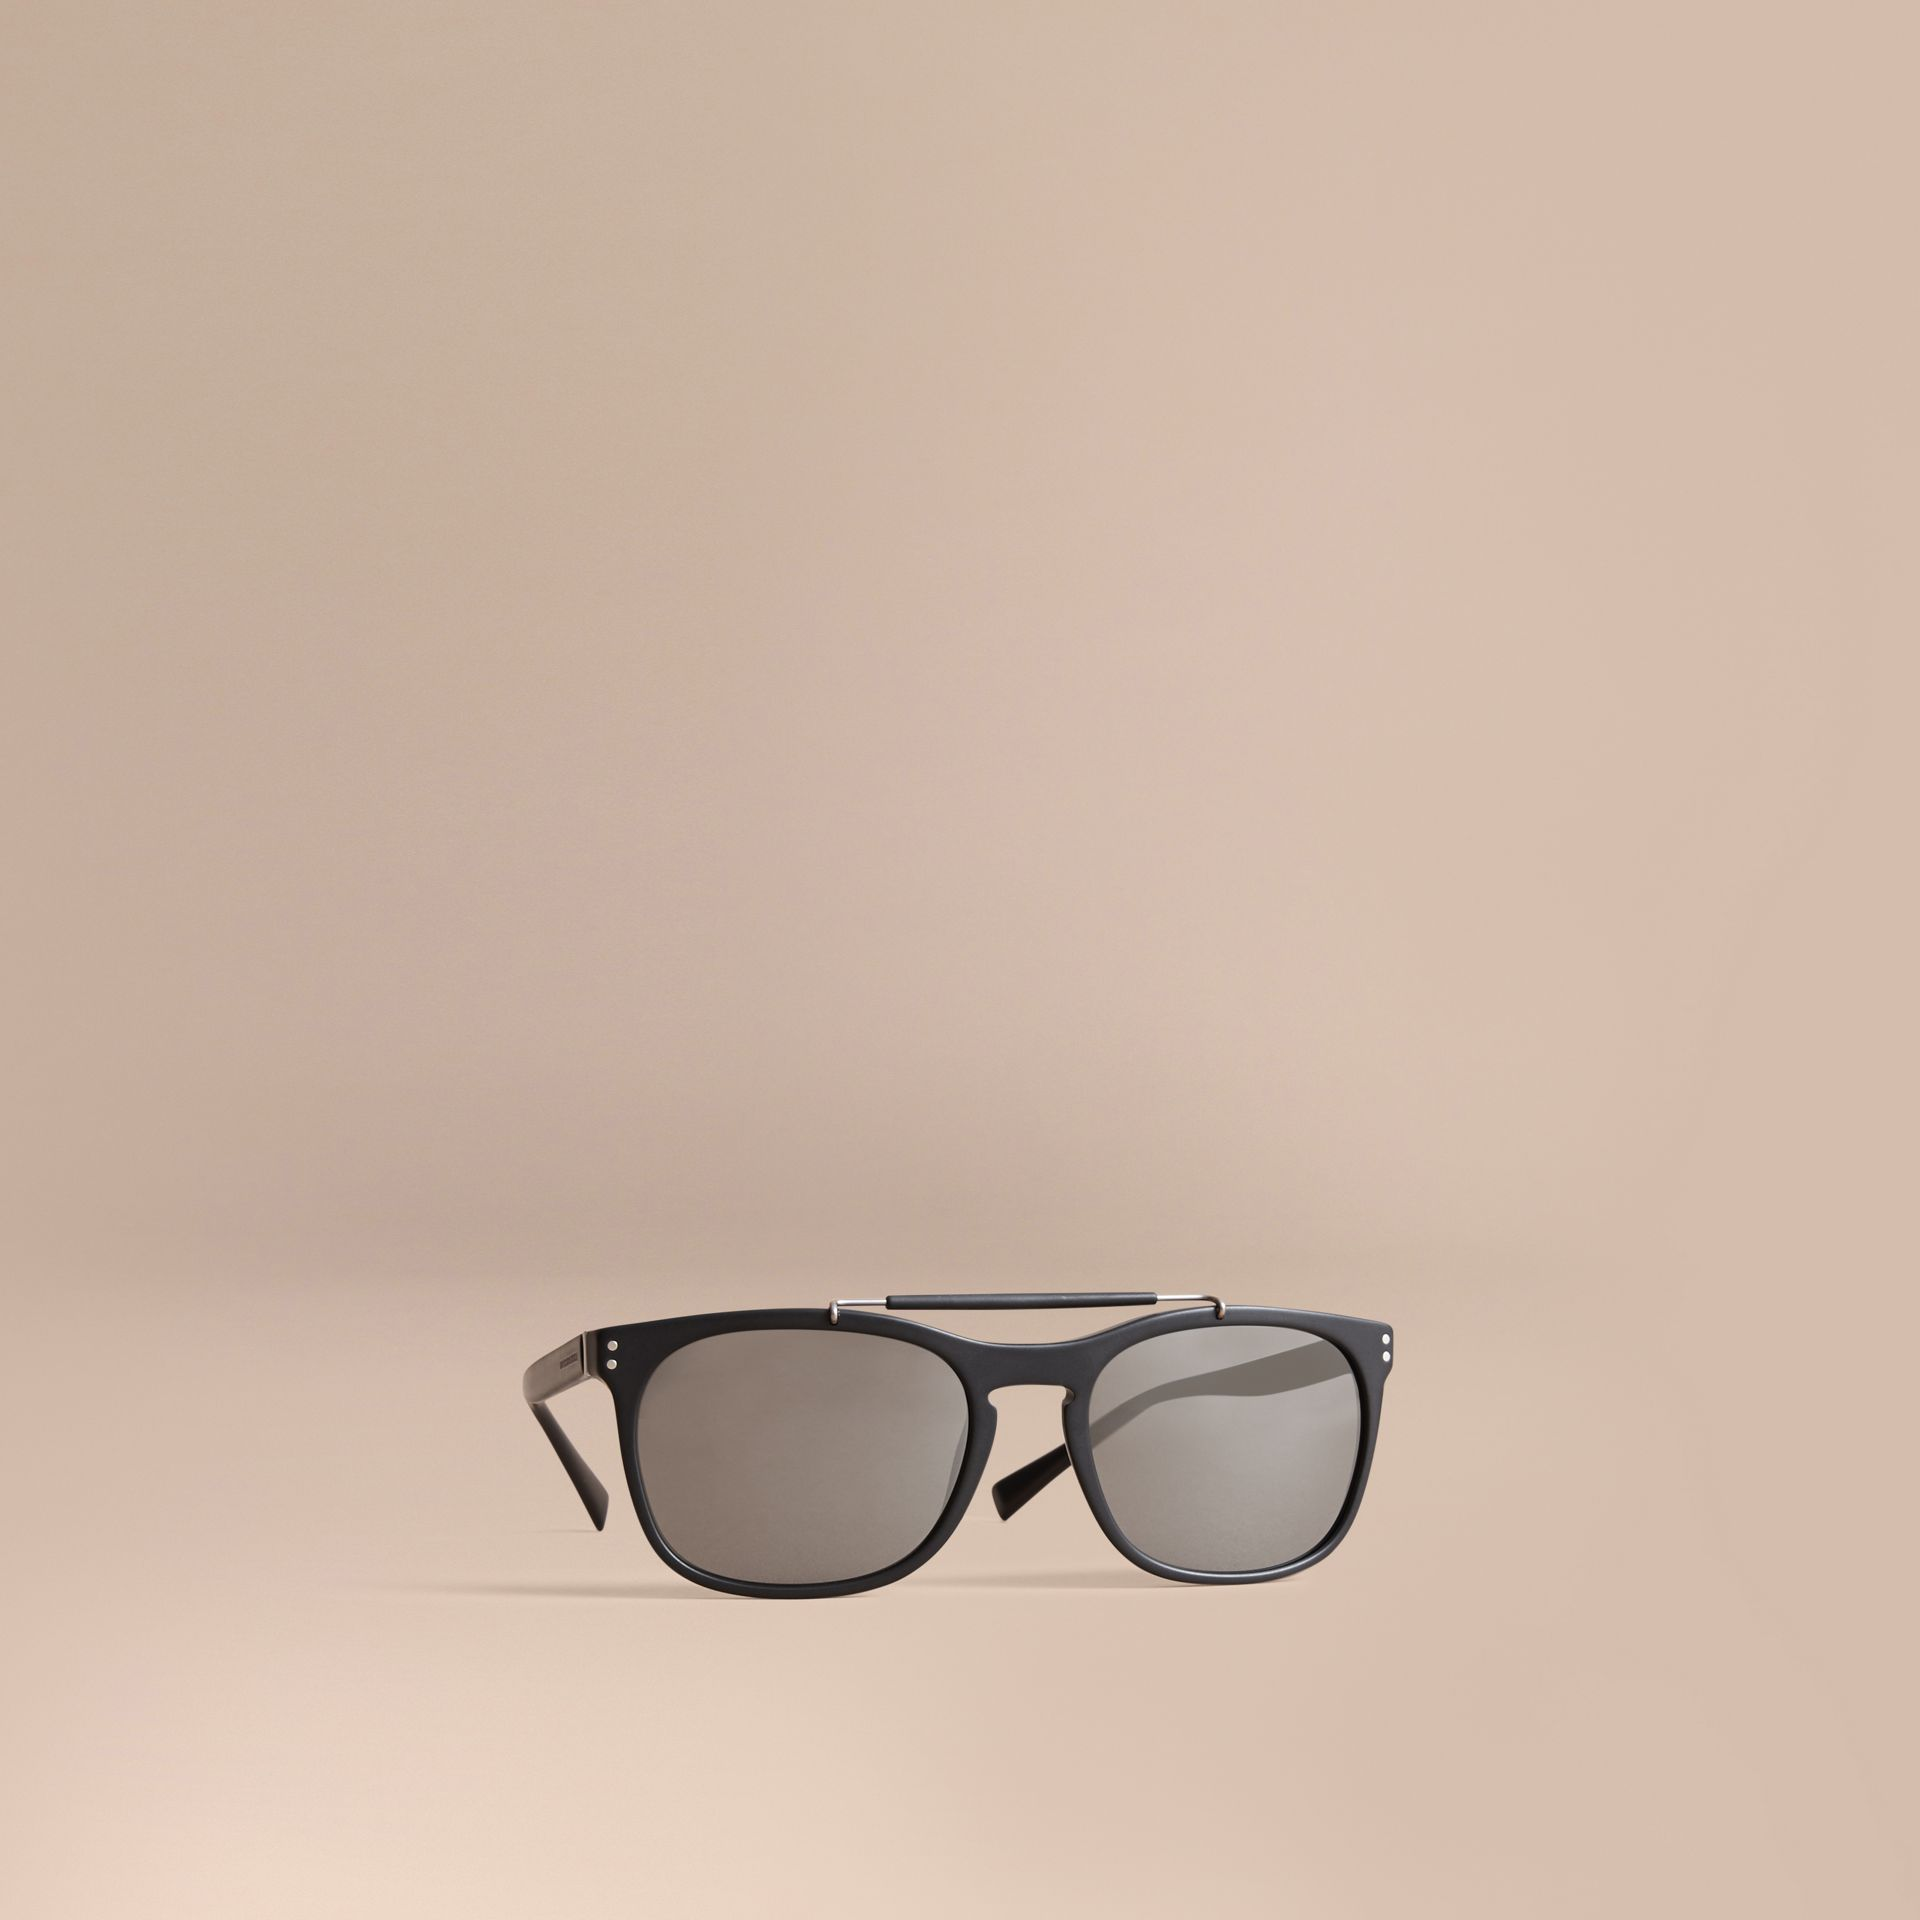 Top Bar Square Frame Sunglasses in Black - Men | Burberry Australia - gallery image 1